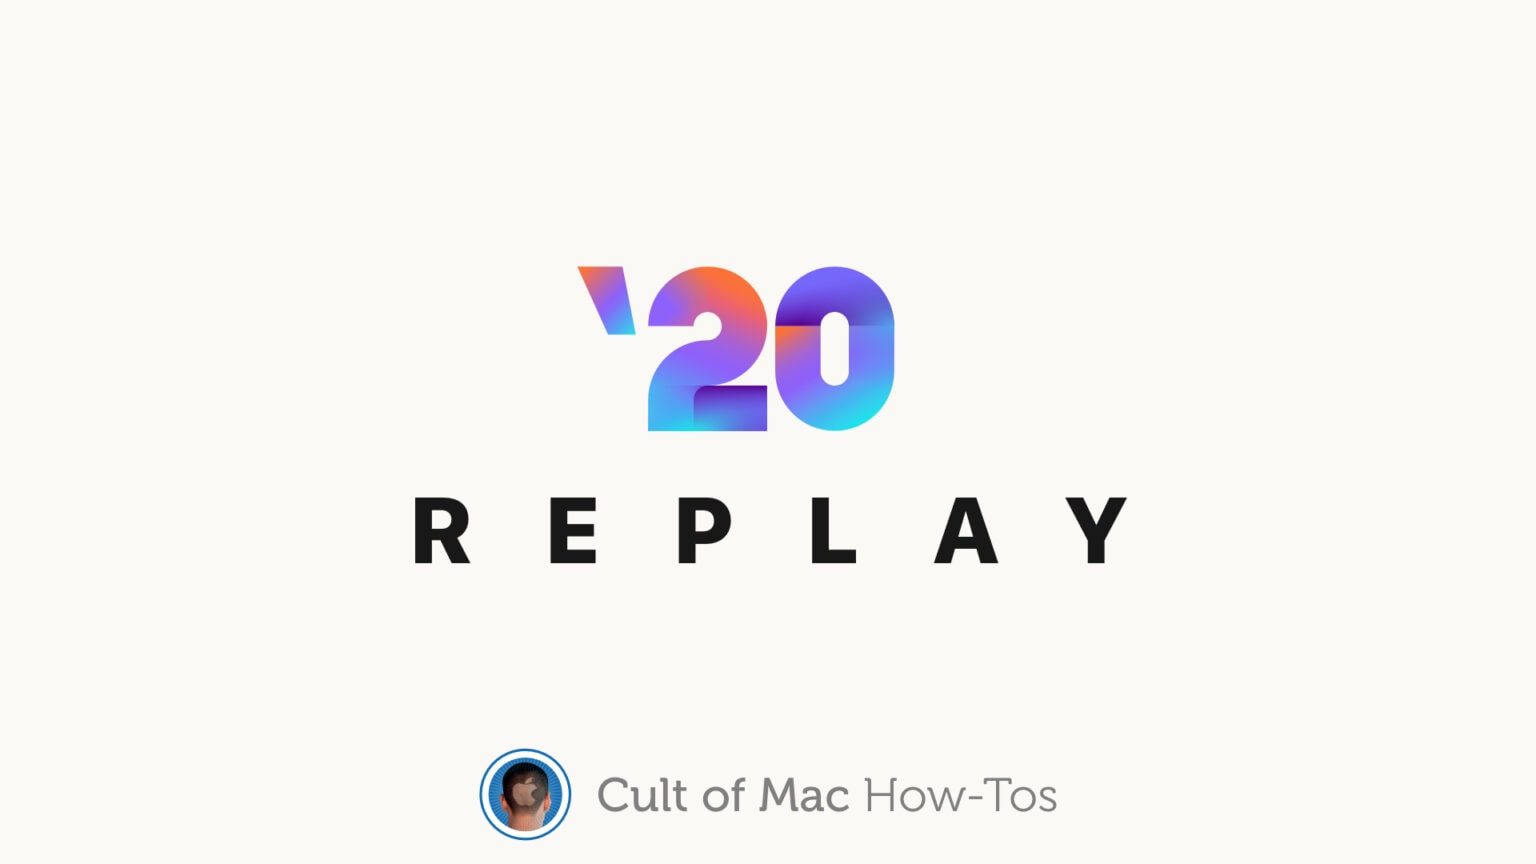 How to get Apple Music 2020 Replay mix